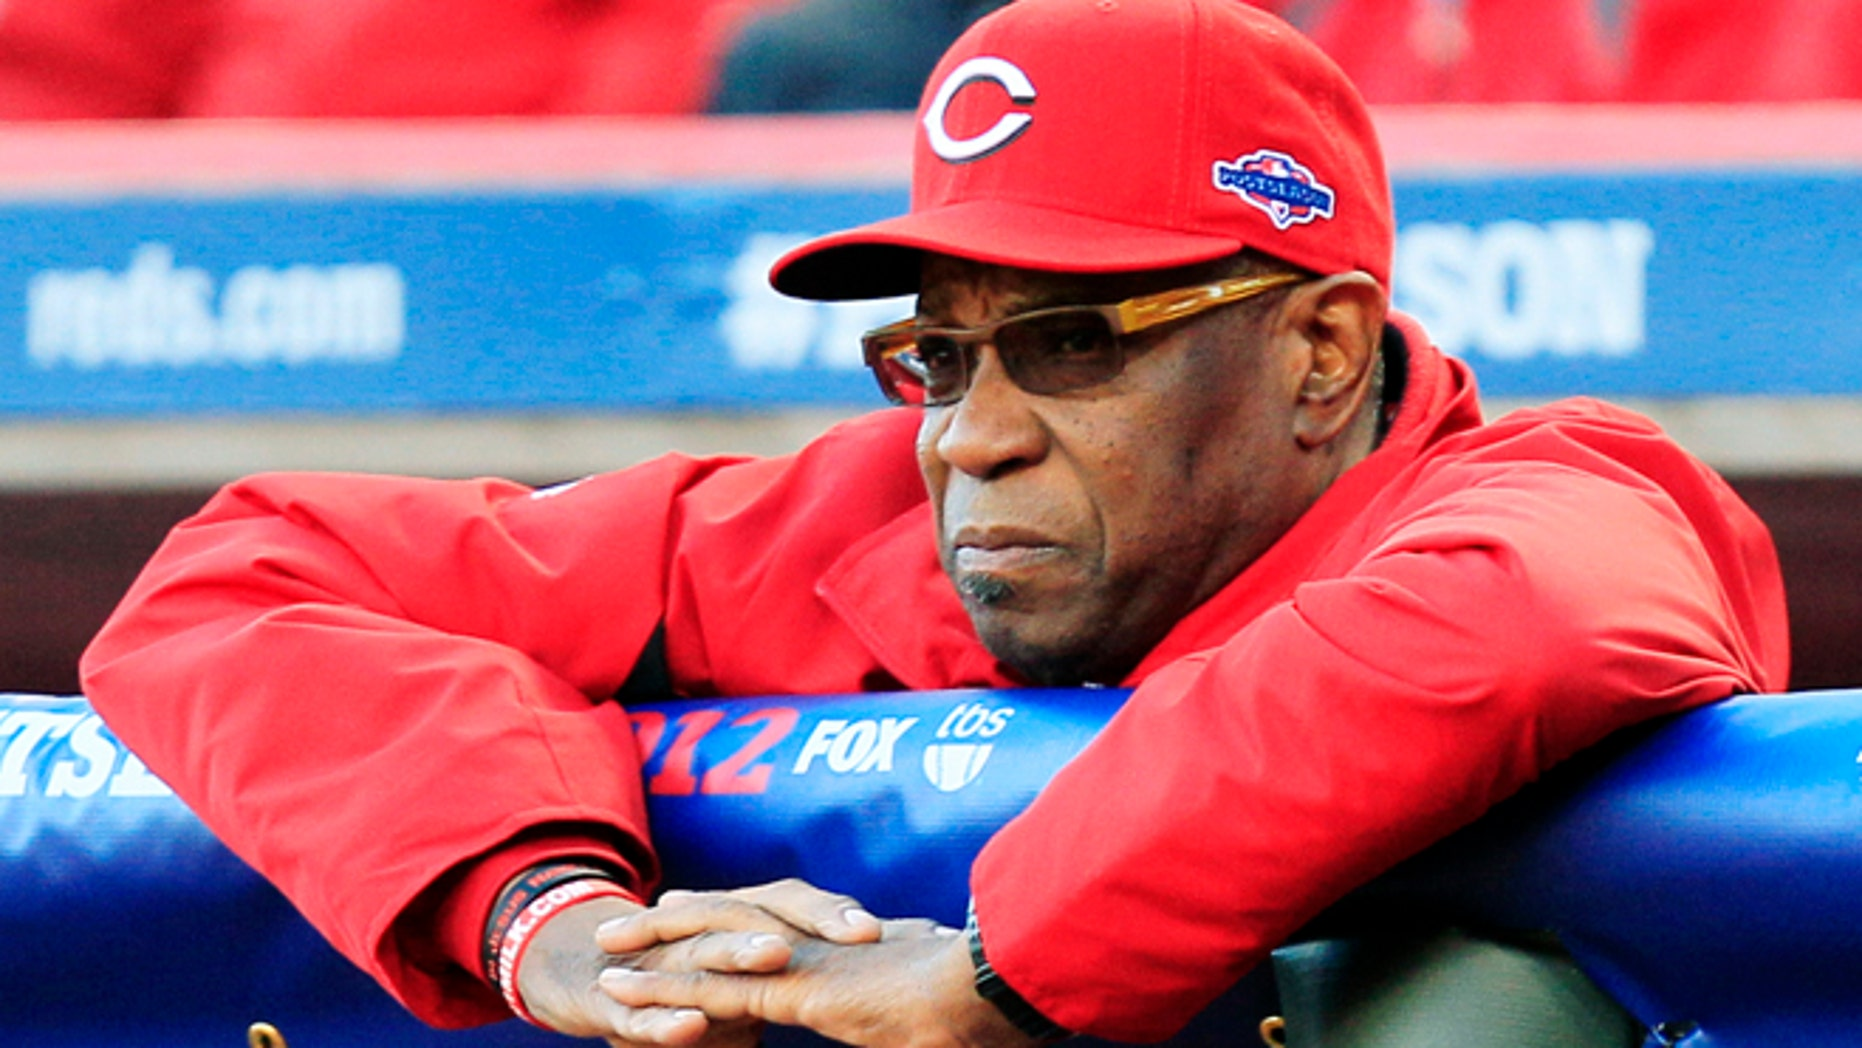 Oct. 9, 2012: Cincinnati Reds manager Dusty Baker watches from the dugout in the first inning during Game 3 of the National League division baseball series against the San Francisco Giants in Cincinnati.